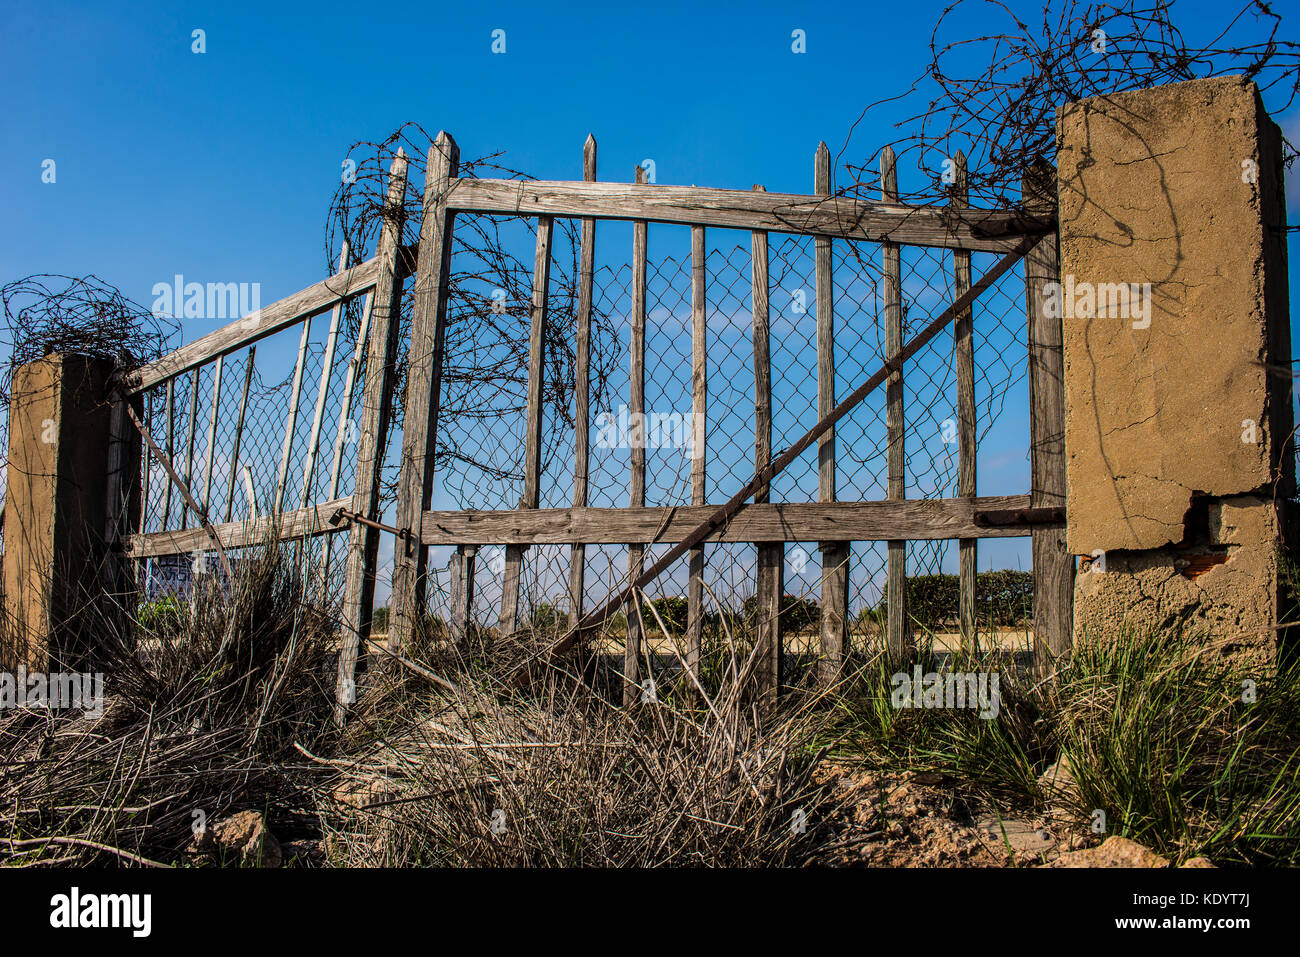 Wire Gates Stock Photos & Wire Gates Stock Images - Alamy